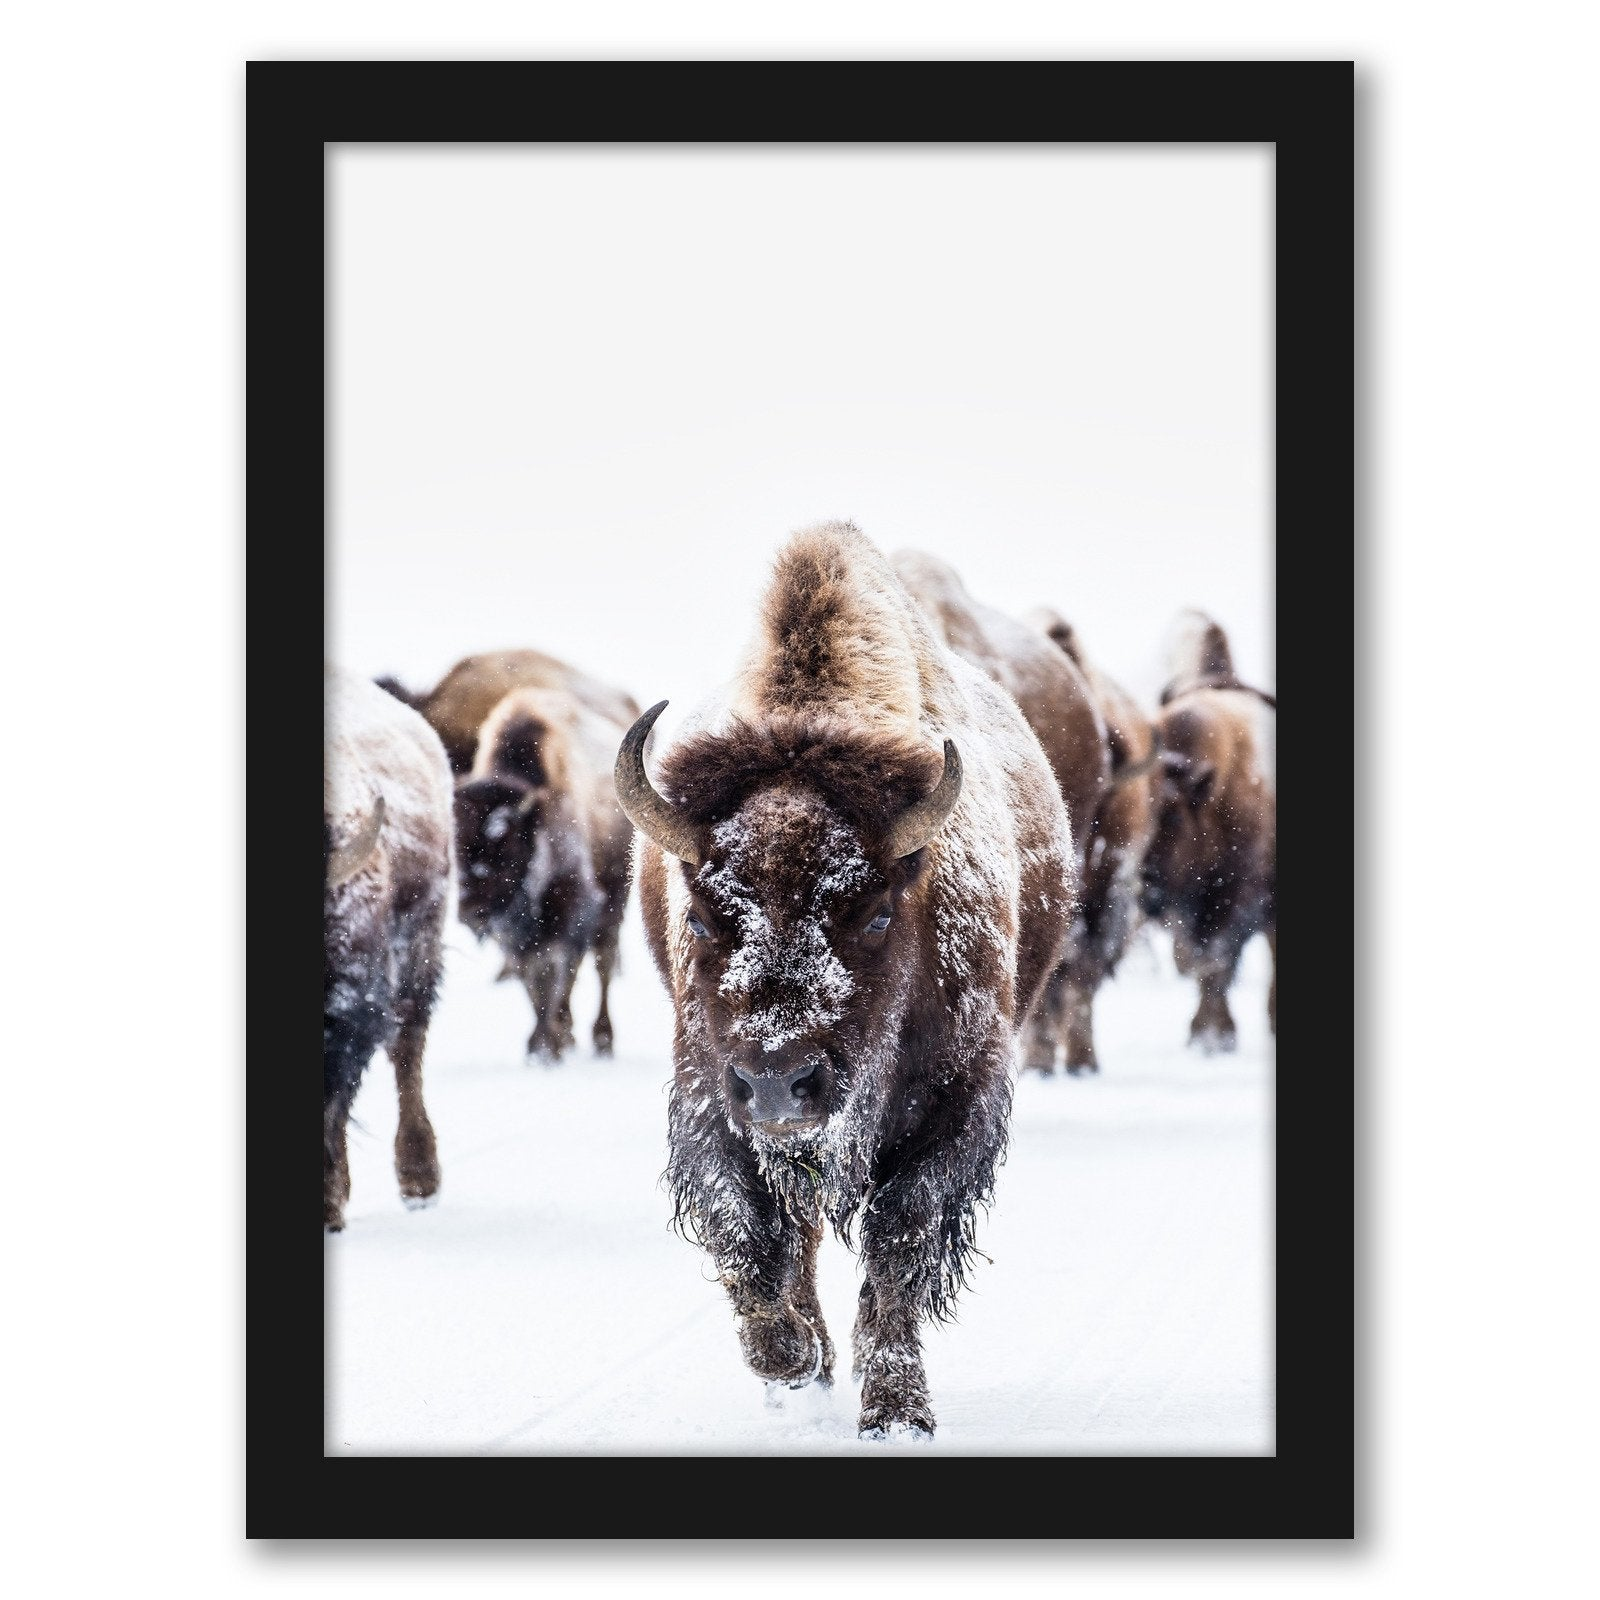 Bison Wall Art by Tanya Shumkina - Black Framed Print - Wall Art - Americanflat